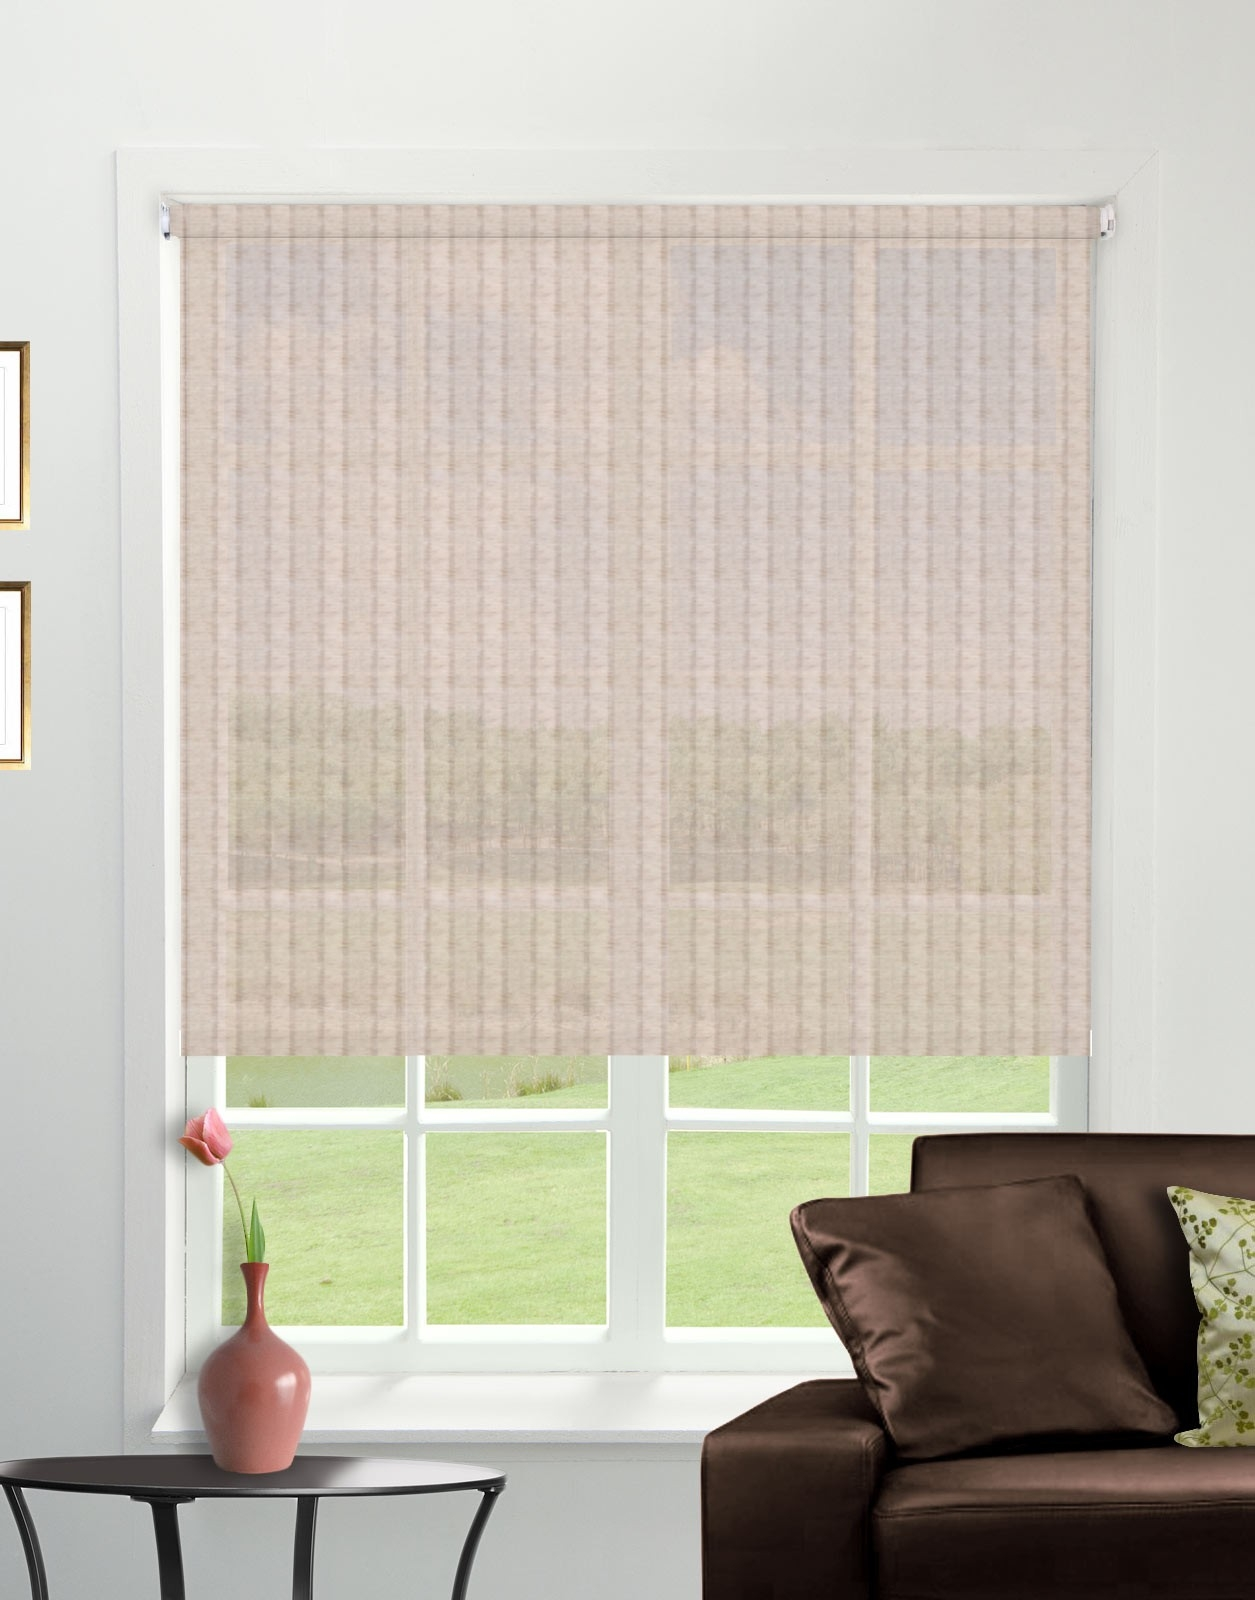 Bali Linen Roller Blind Direct Order Blinds Uk Intended For Linen Roller Blinds (Image 3 of 15)